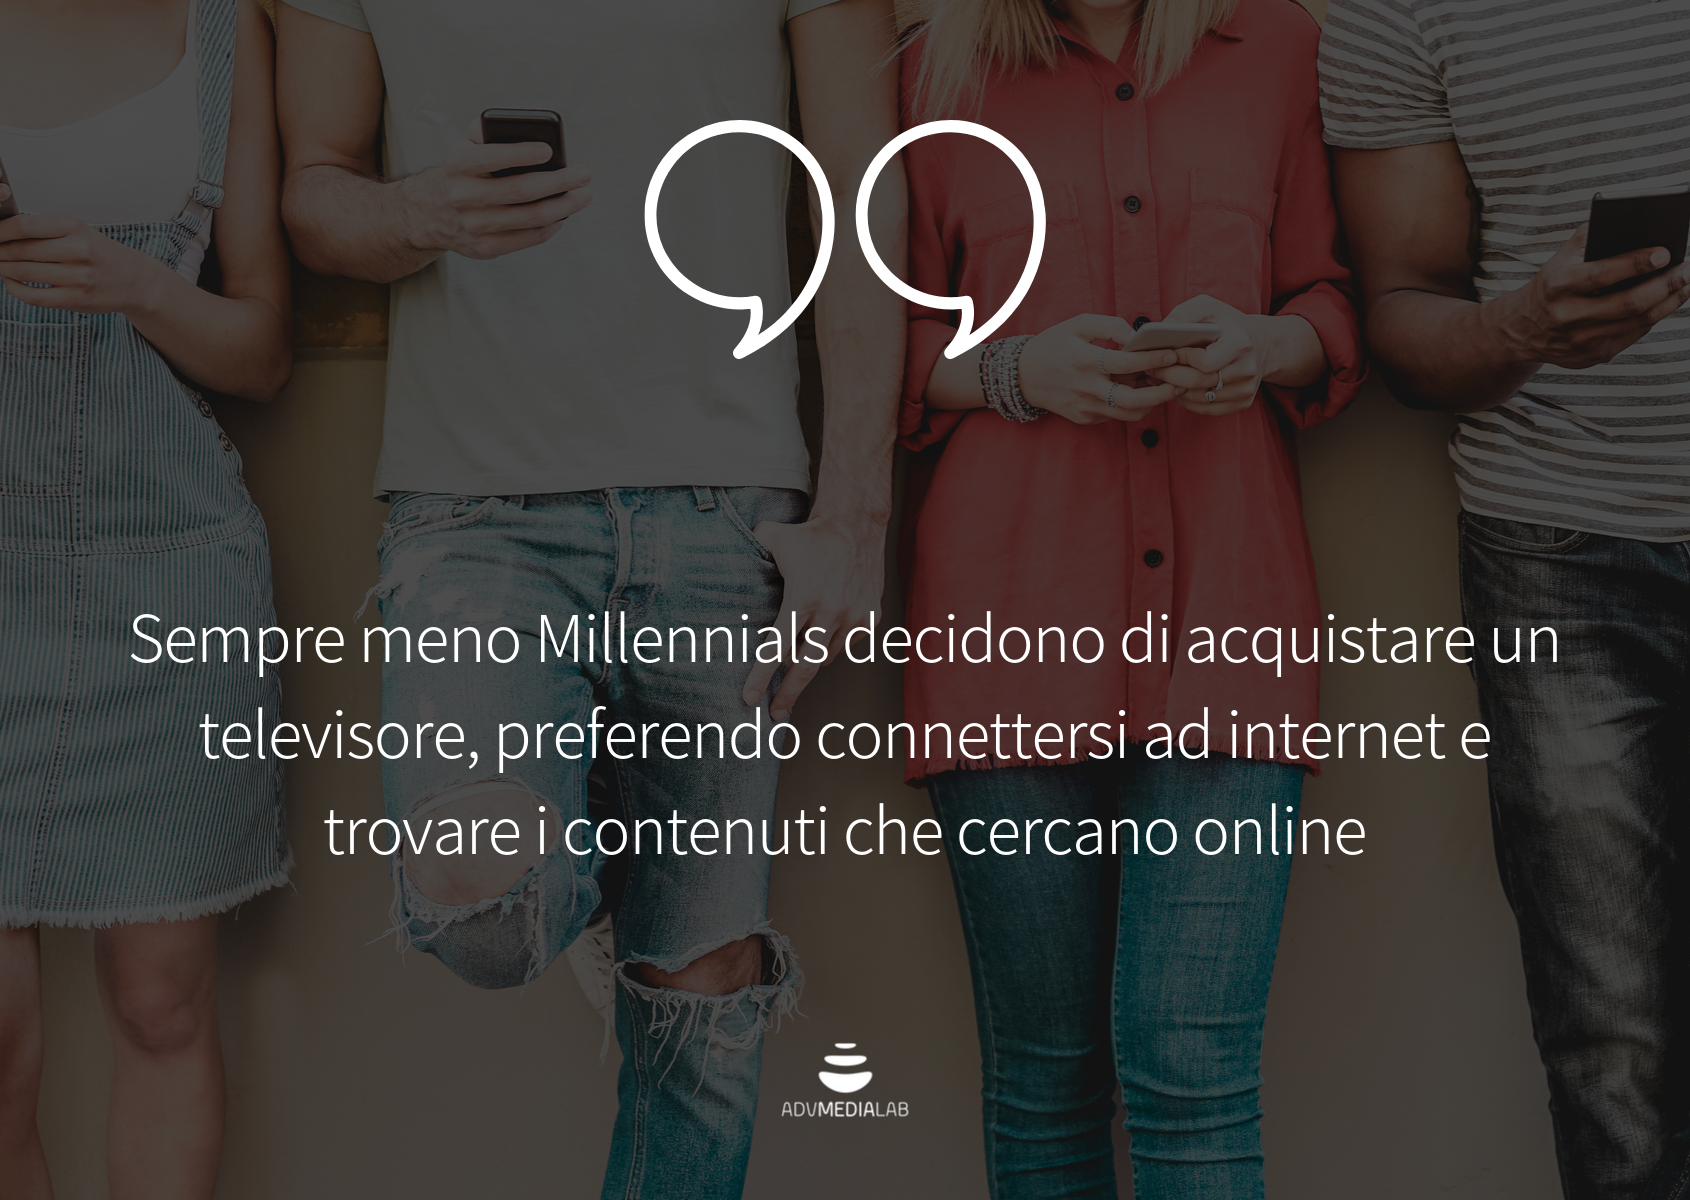 come raggiungere i millennials grazie allinbound marketing (1)